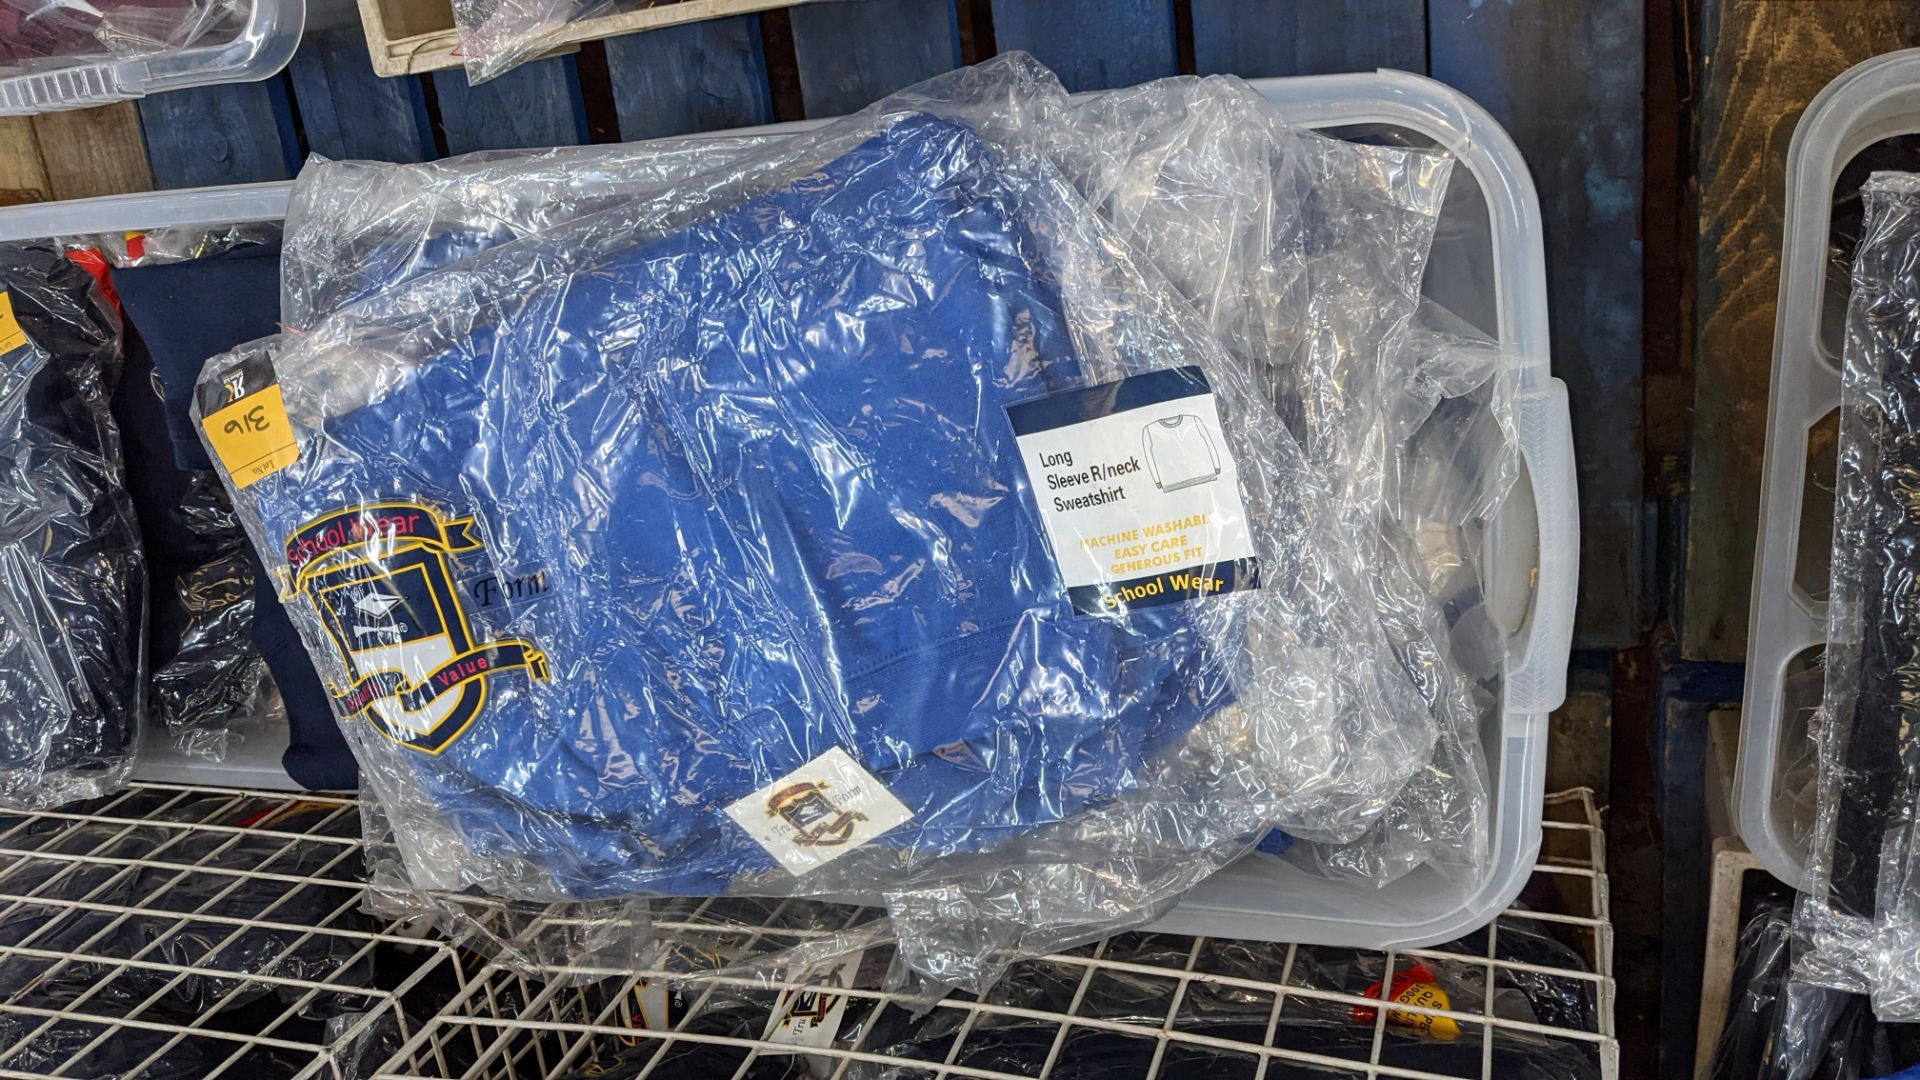 Approx 23 off blue children's sweatshirts & similar - the contents of 1 crate. NB crate excluded - Image 6 of 6